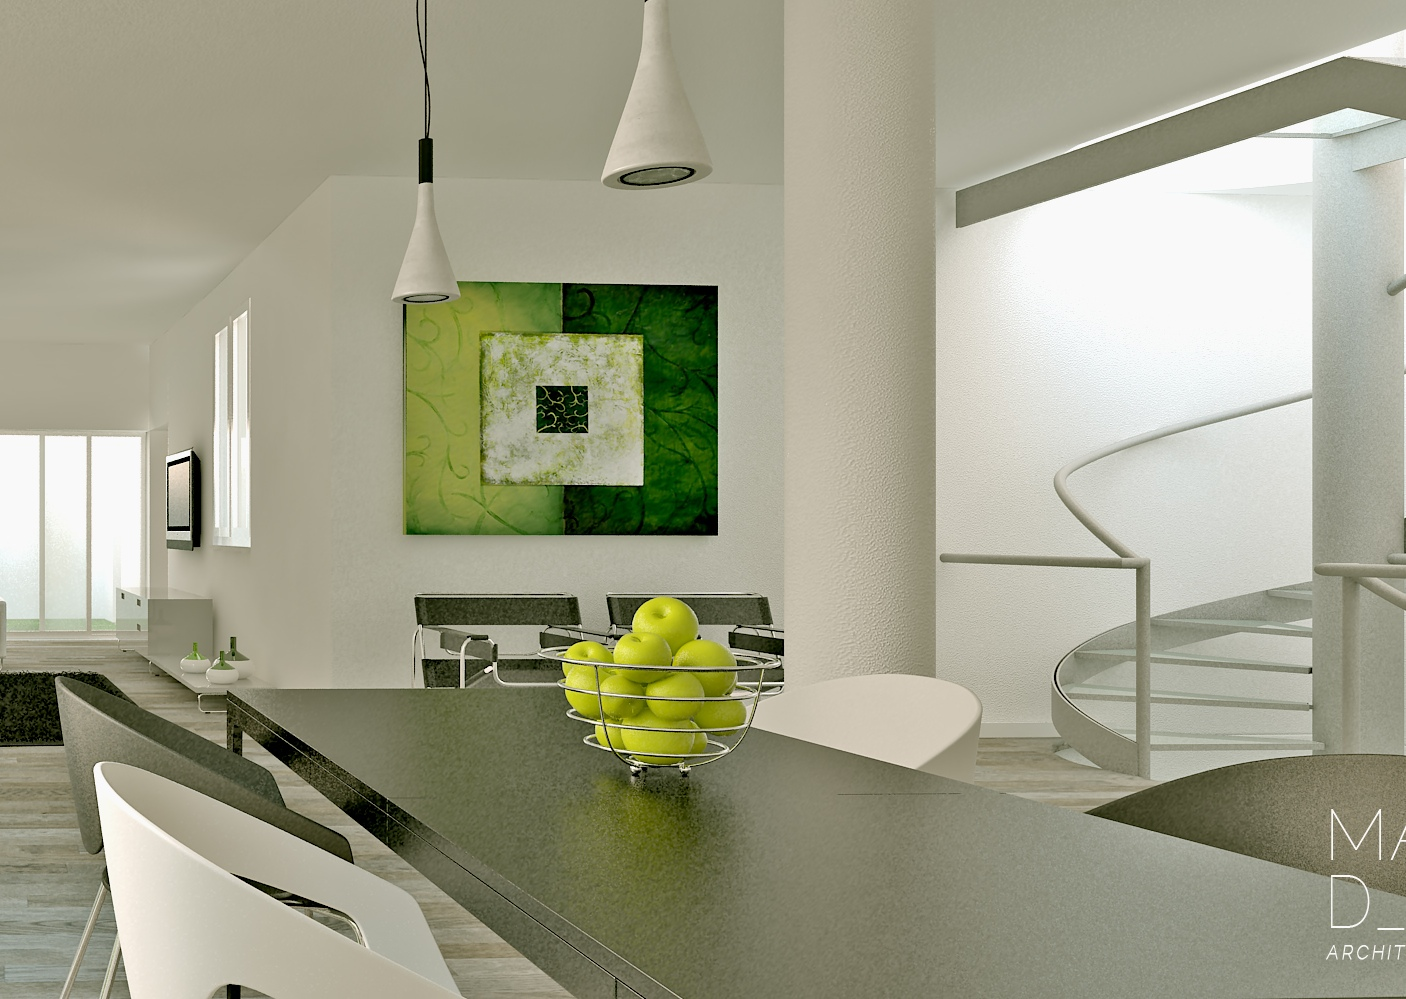 Green white gray dining room interior design ideas Contemporary interior design